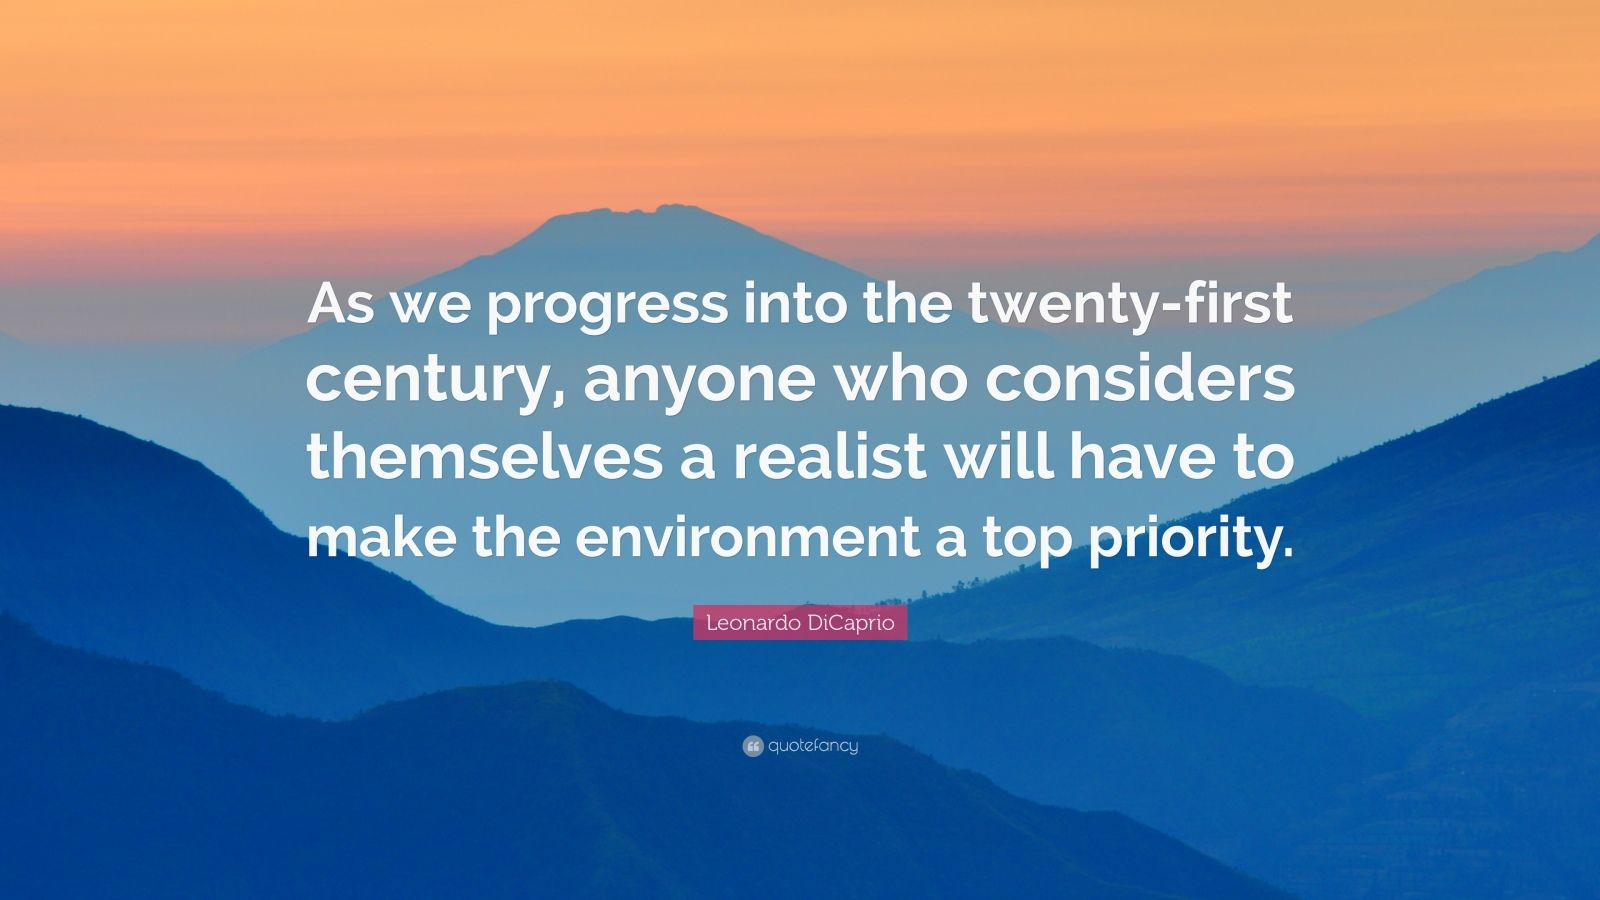 """Leonardo DiCaprio Quote: """"As we progress into the twenty-first century, anyone who considers themselves a realist will have to make the environment a top priority."""""""